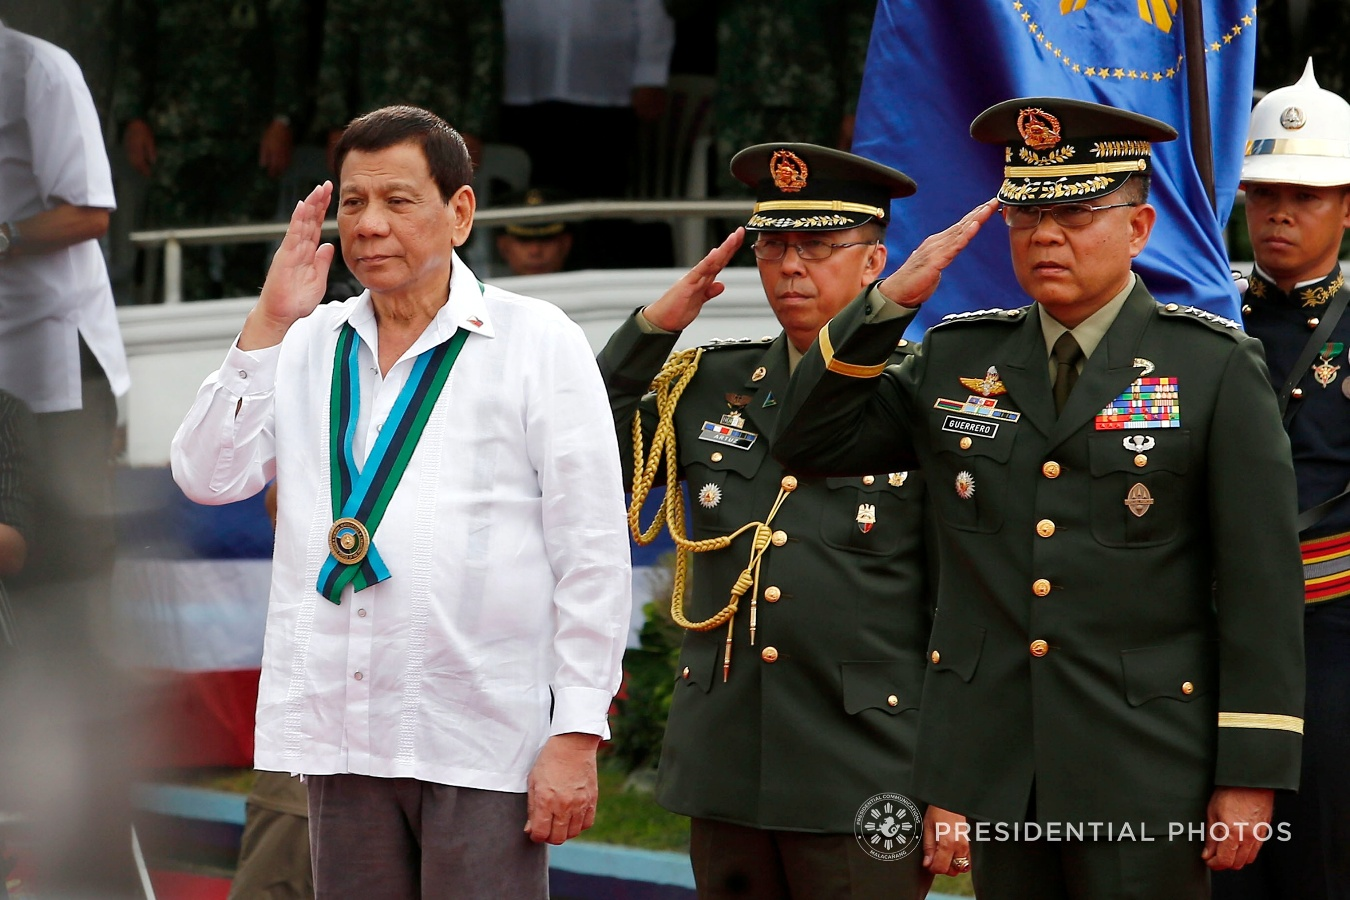 President Rodrigo Roa Duterte is accorded with military honors upon his arrival at Camp Emilio Aguinaldo in Quezon City for his attendance to the 82nd Anniversary Celebration of the Armed Forces of the Philippines (AFP) on December 20, 2017. Accompanying the President is AFP Chief of Staff General Rey Guerrero. ALFRED FRIAS/PRESIDENTIAL PHOTO